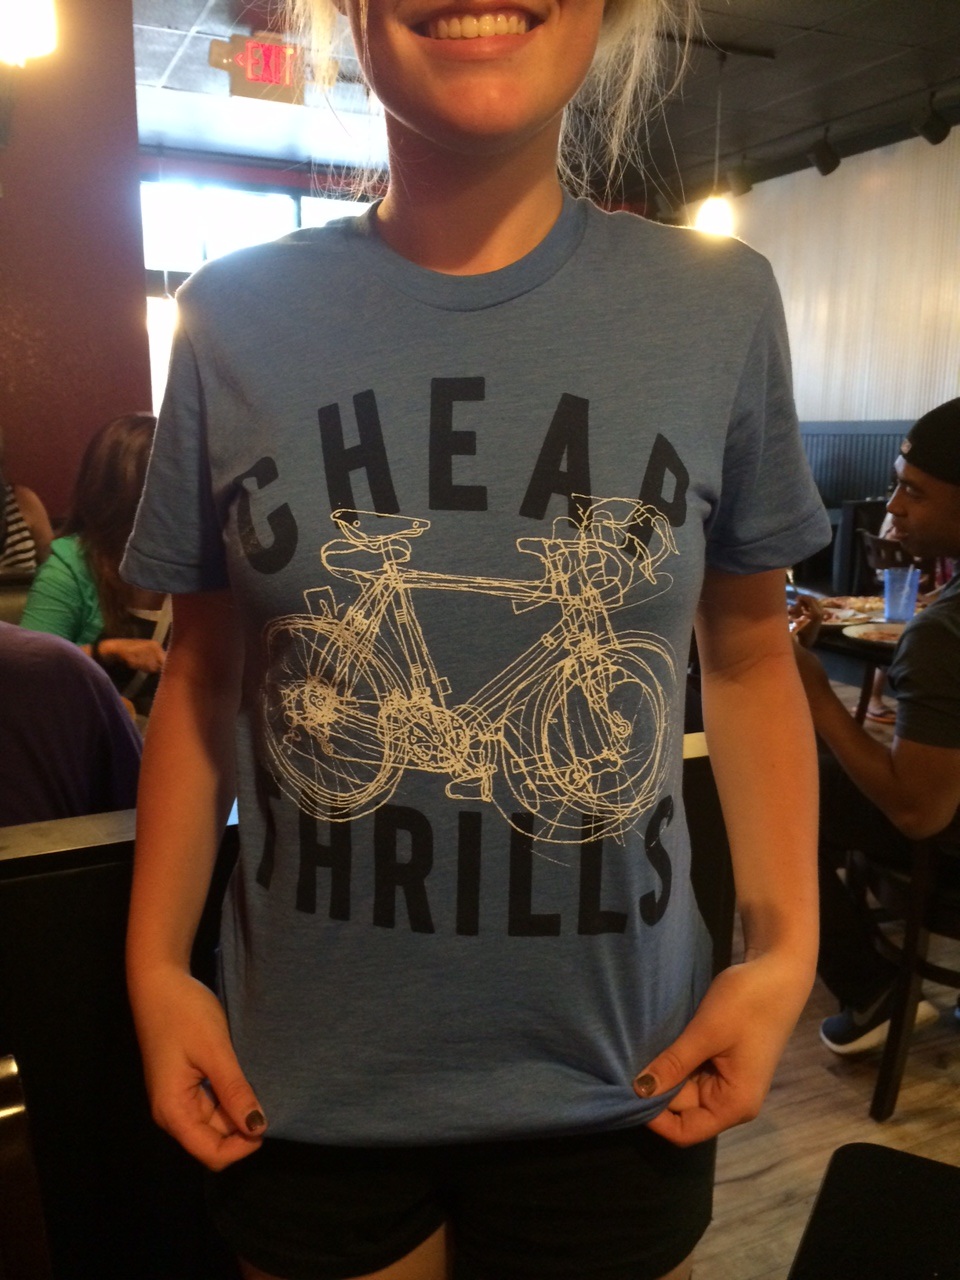 Modeling my new shirt at Crust 54 Pizza in Holland, MI